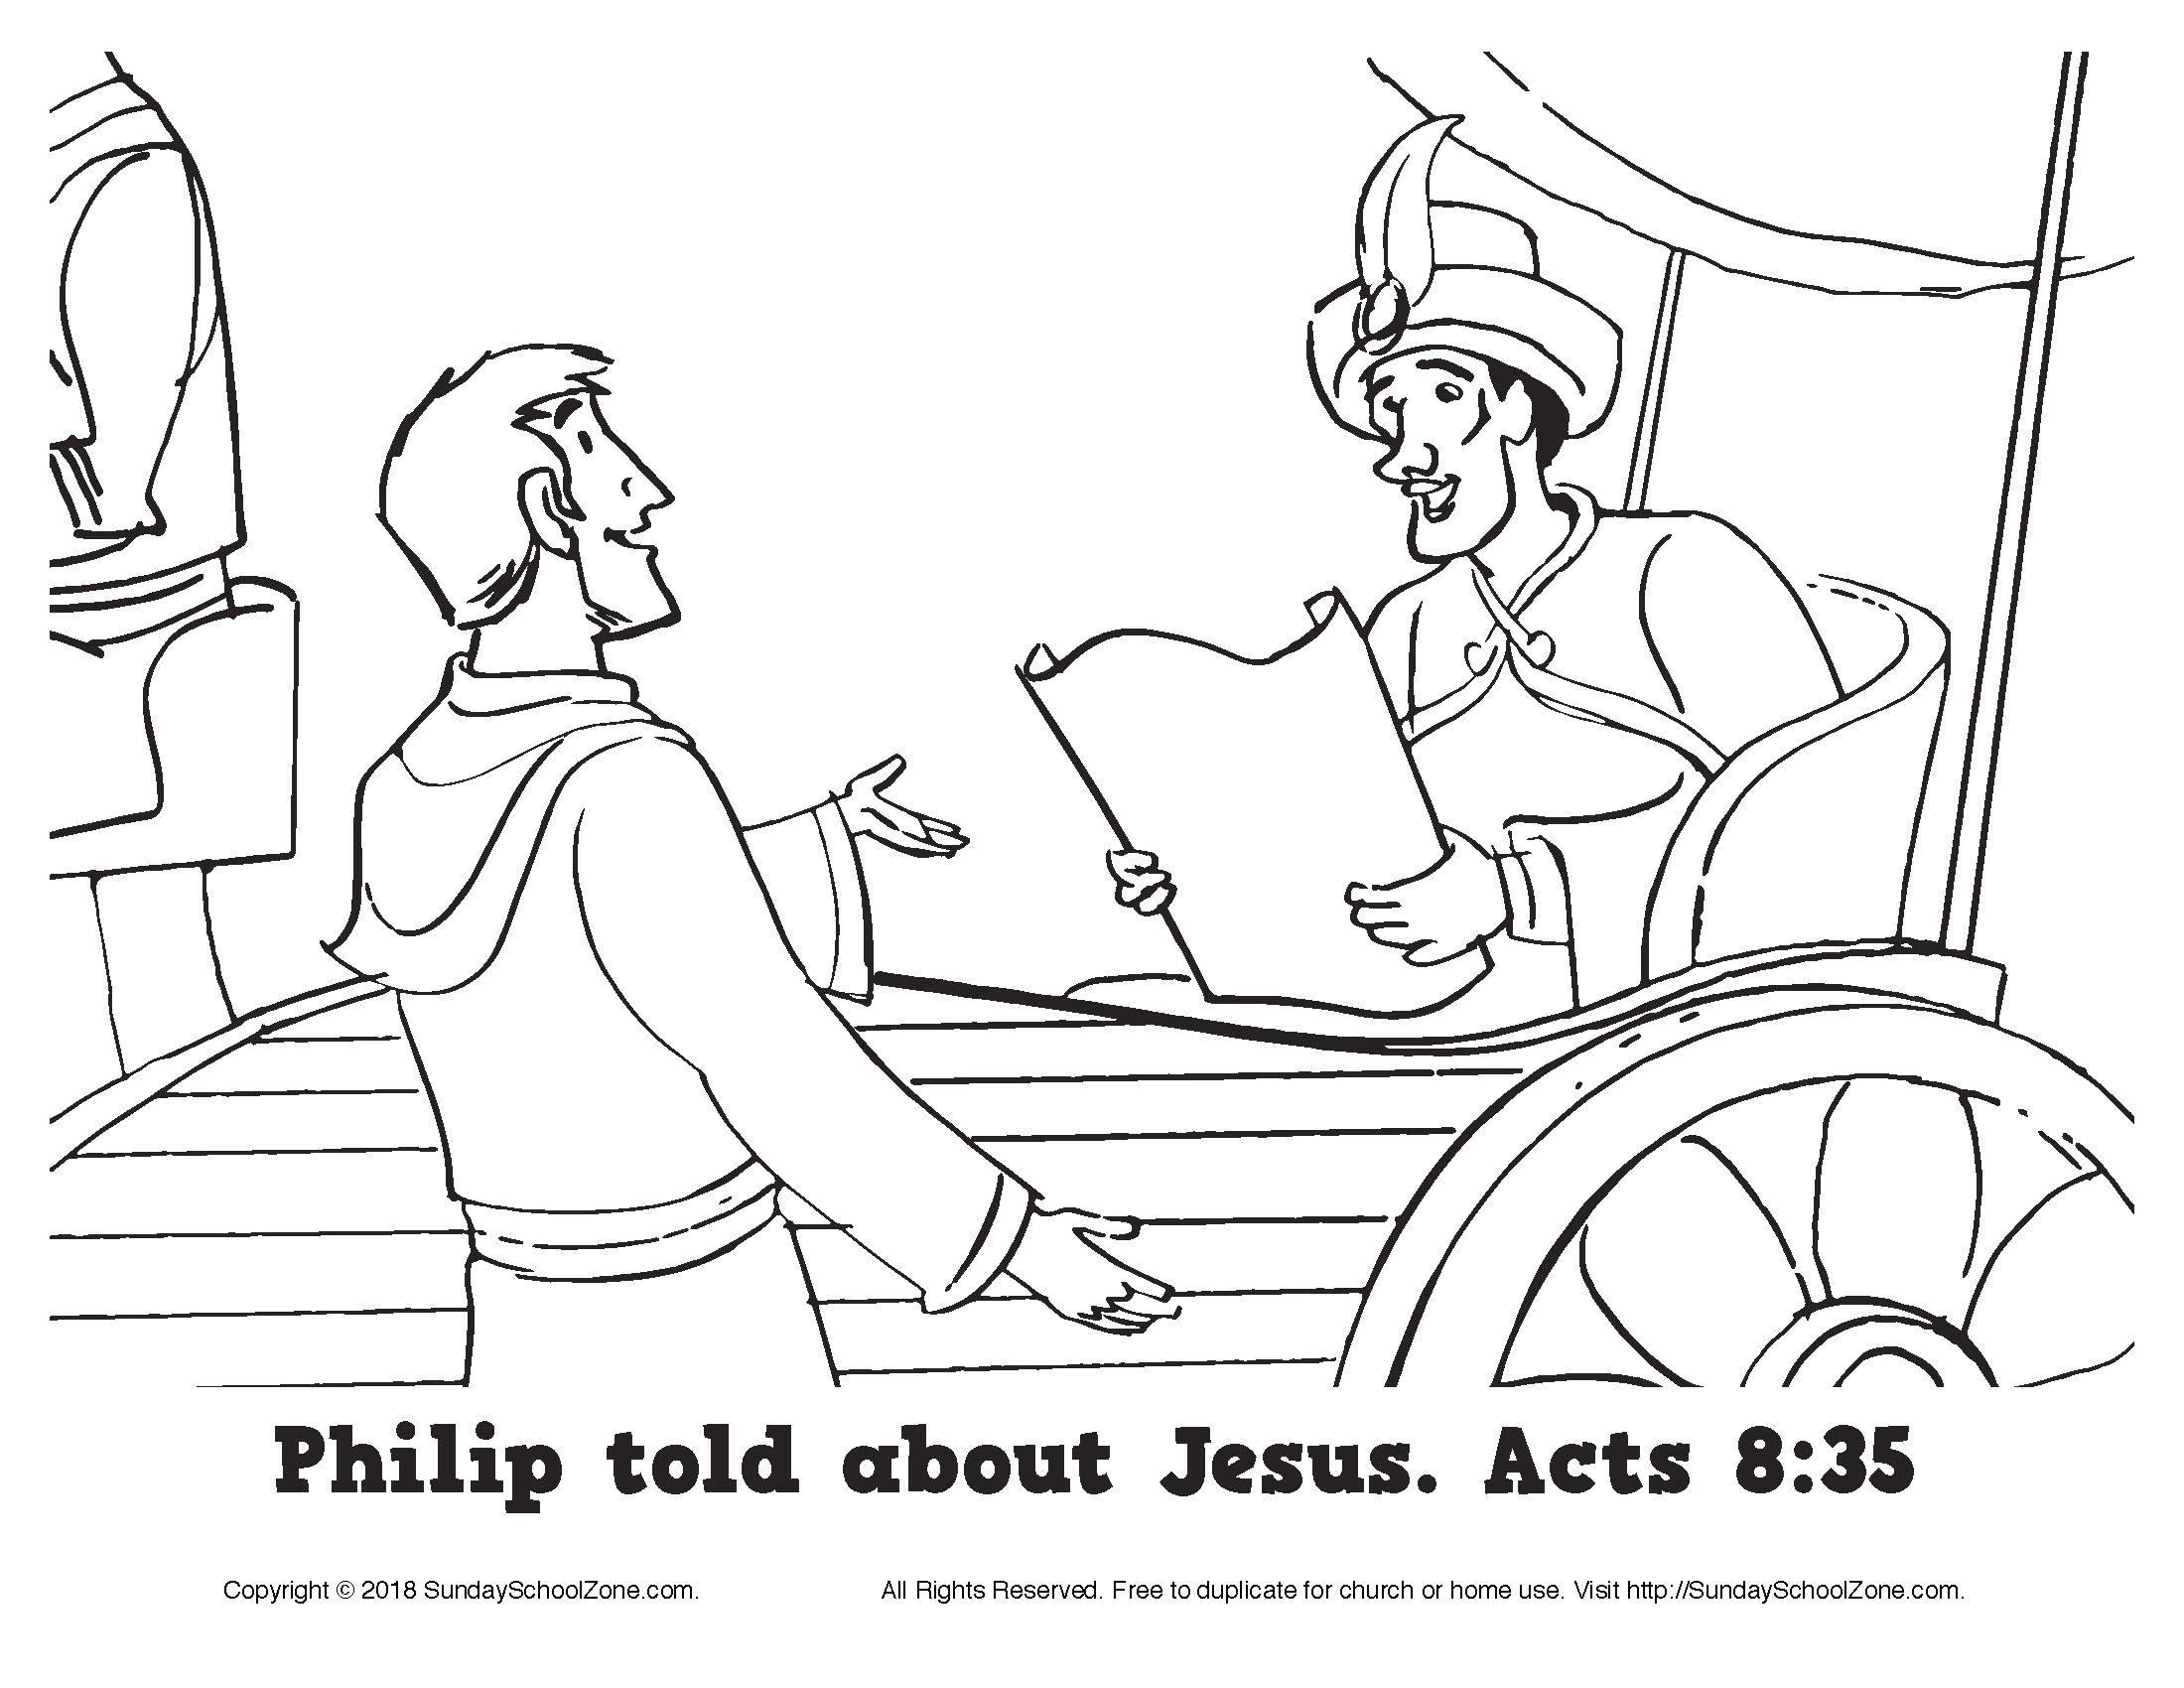 Free Coloring Pages Philip and the Ethiopian Philip told About Jesus Coloring Page On Sunday School